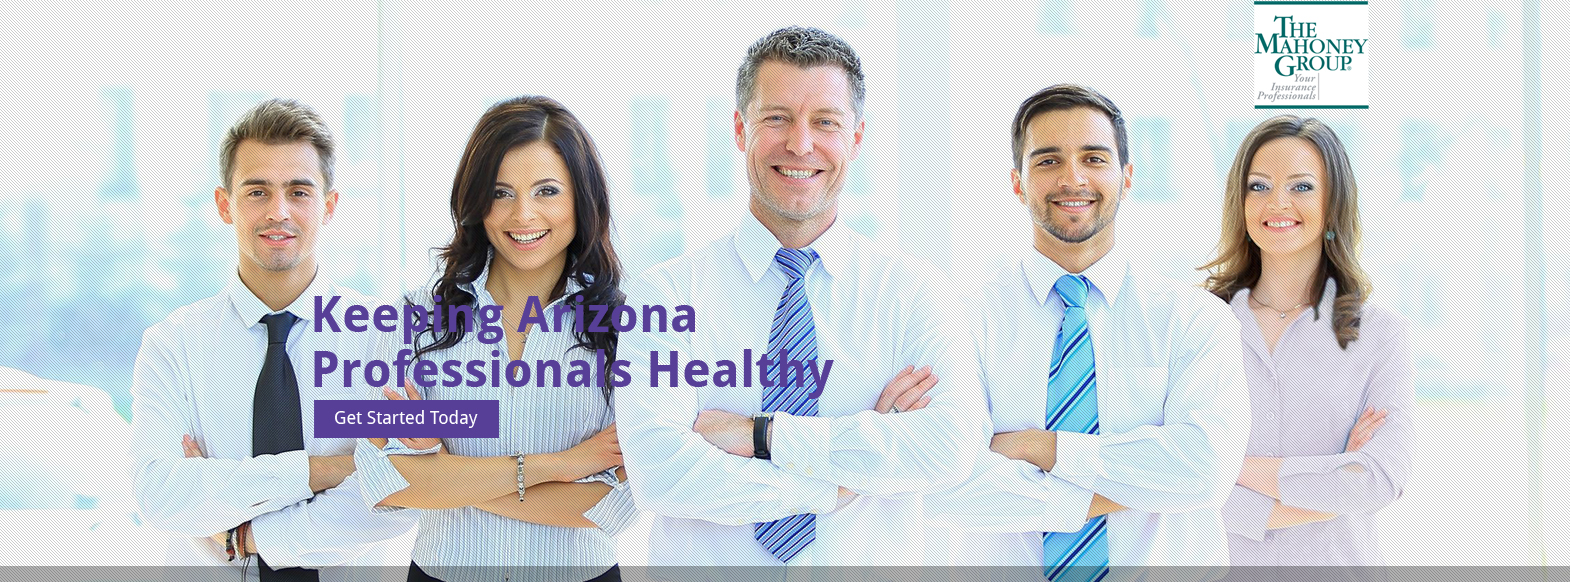 Keeping Arizona Professionals Healthy